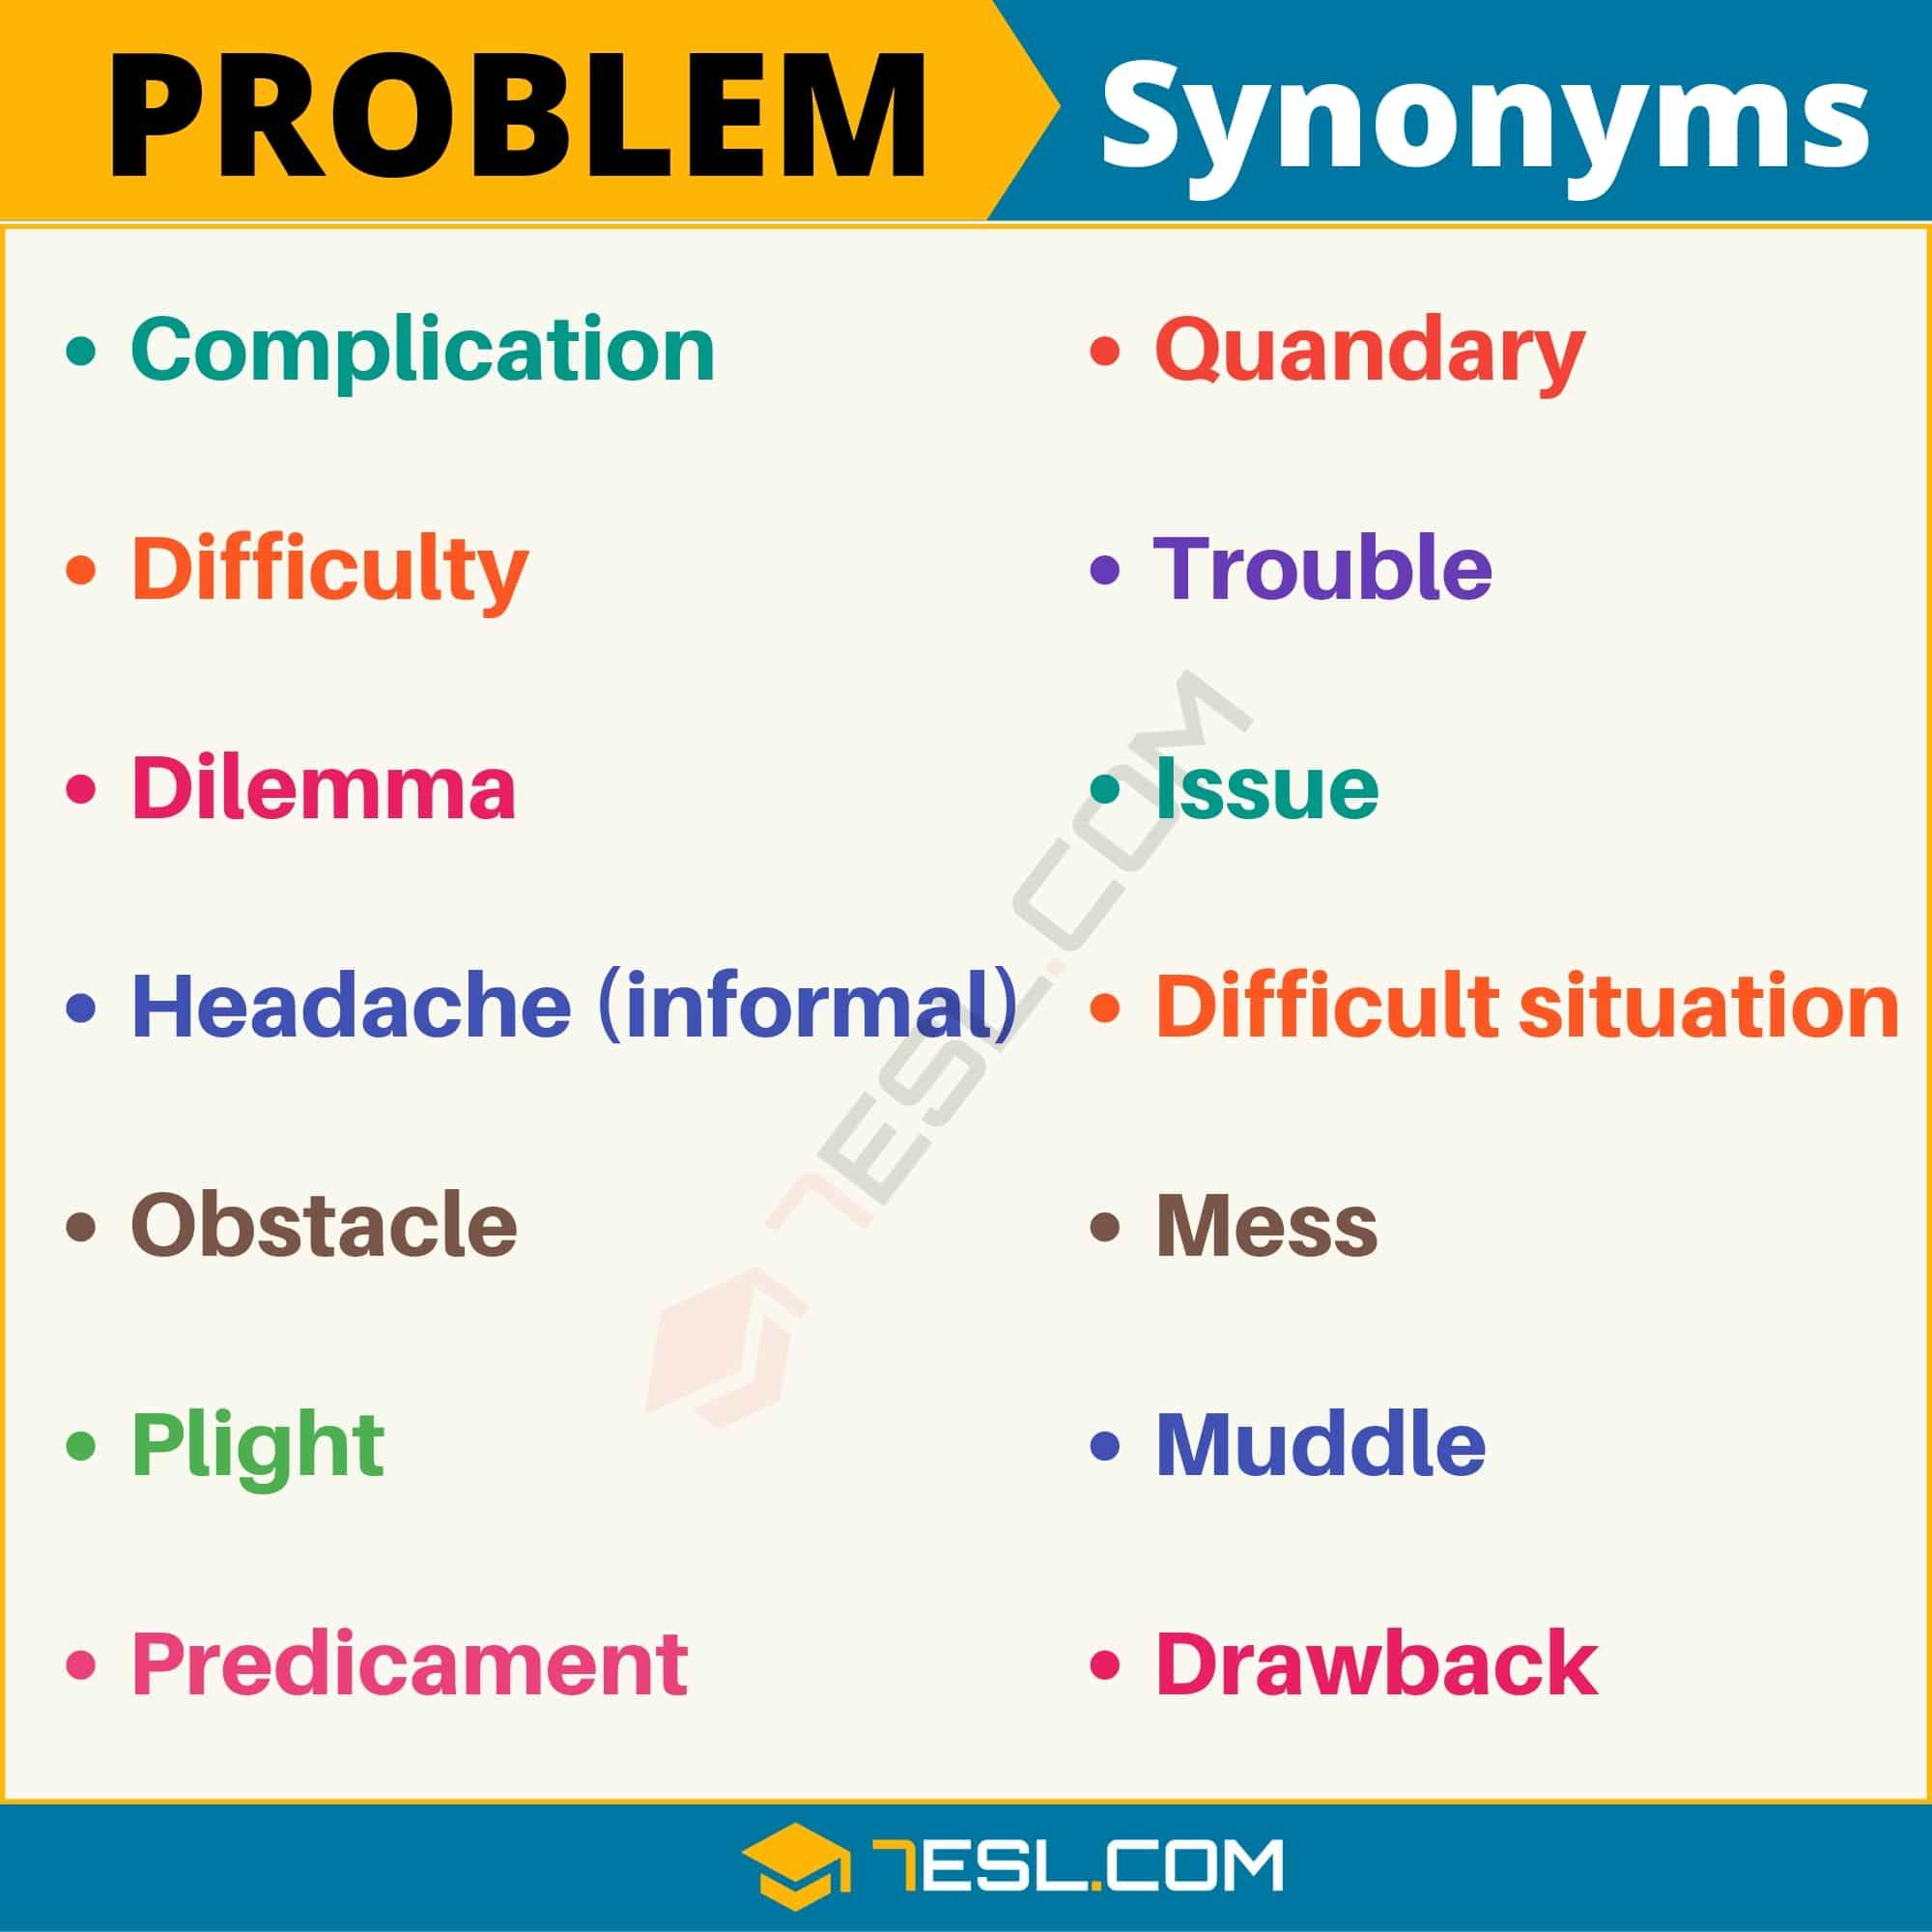 PROBLEM Synonym: List of 14 Synonyms for Problem in English